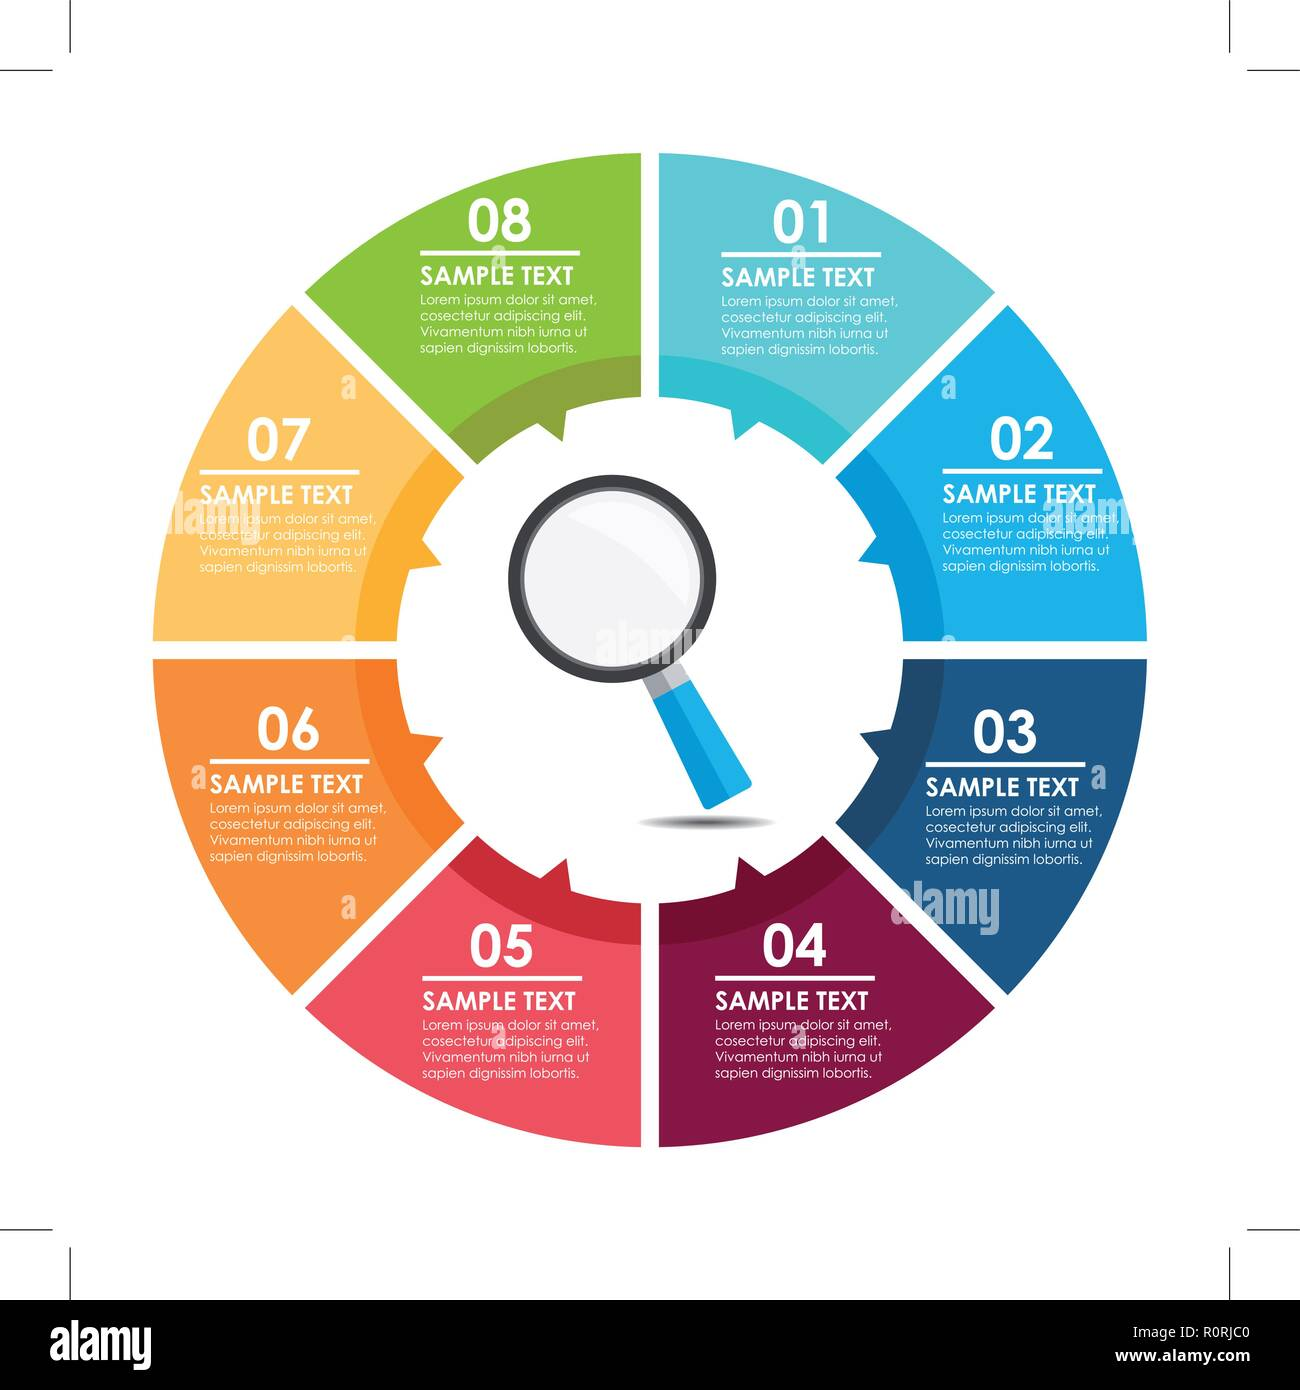 magnifying glass circle infographic. Search concept. Vector illustration. - Stock Image